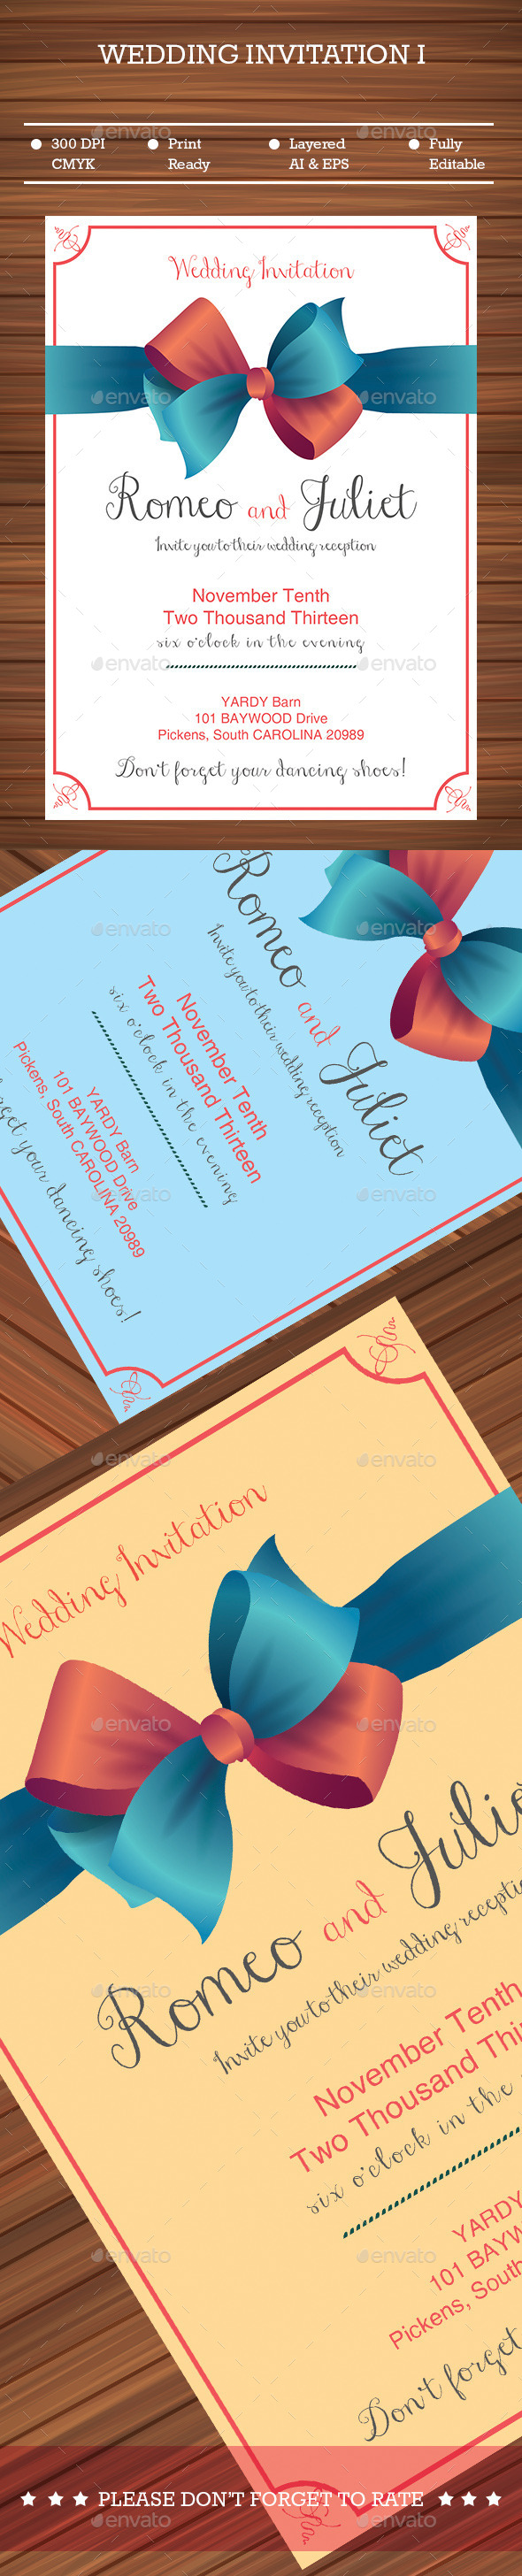 Ribbon Wedding Invitation  - Cards & Invites Print Templates